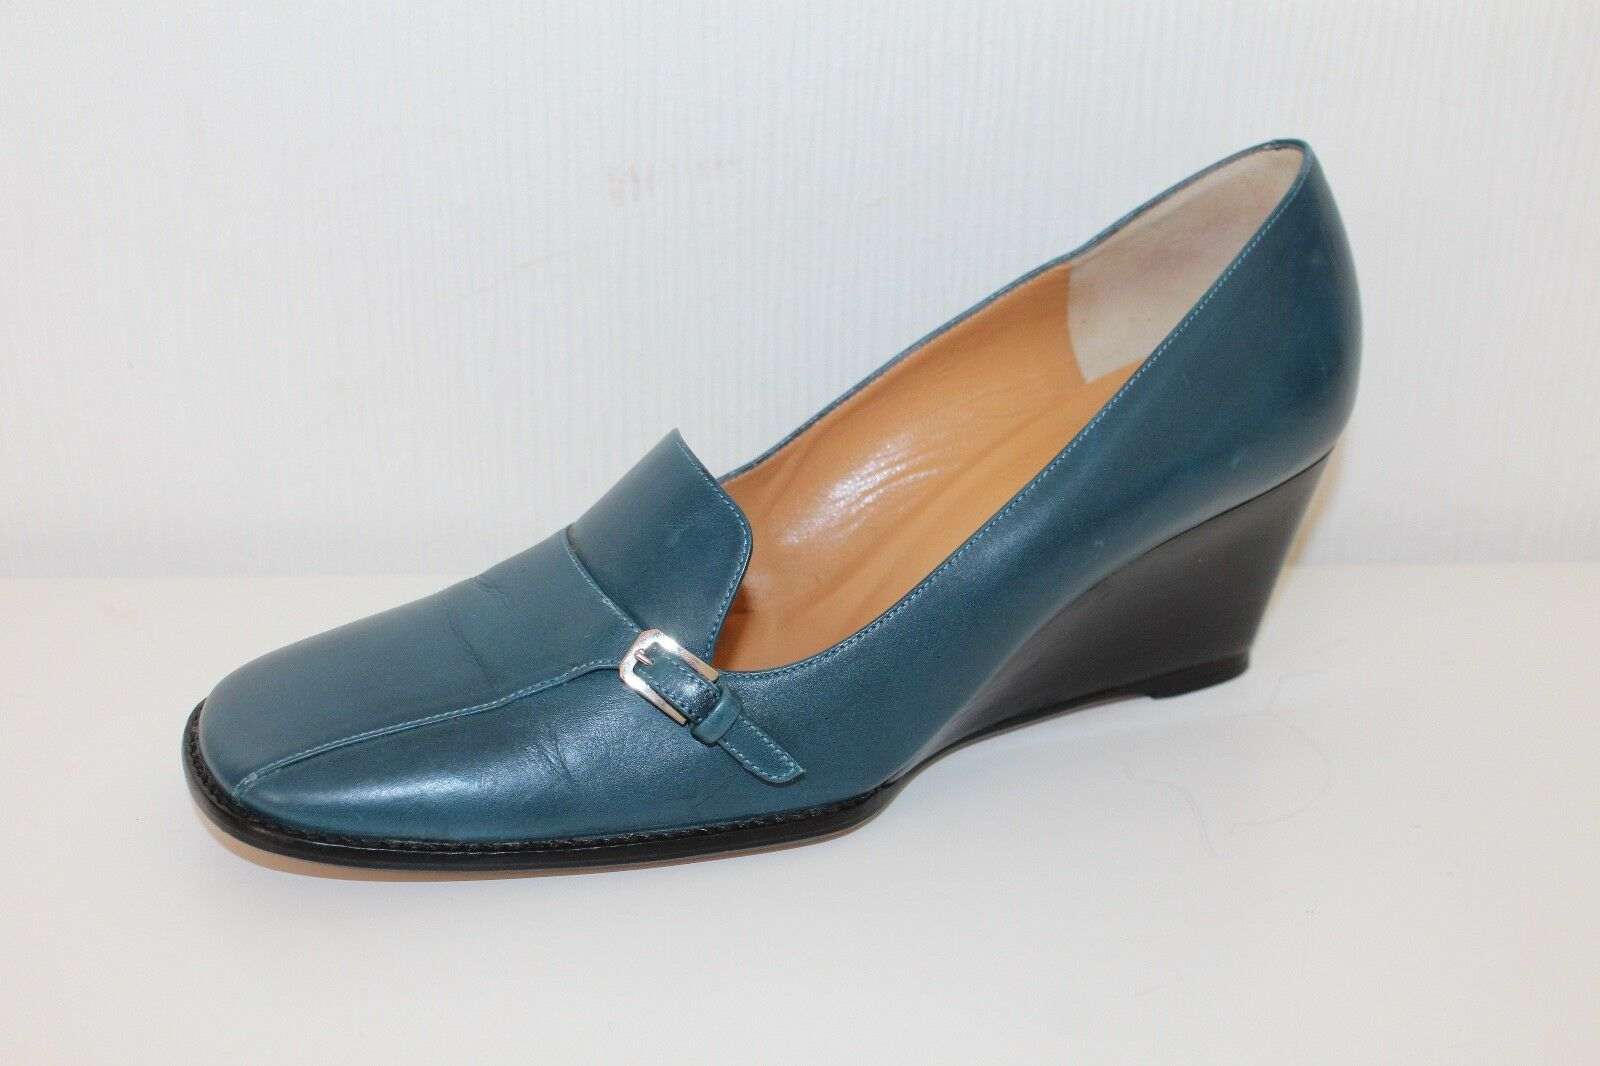 BALLY Donna Scarpe in pelle PUMPS Zeppa Zeppa Slipper Turchese 36.5 uk3, 5 shoes